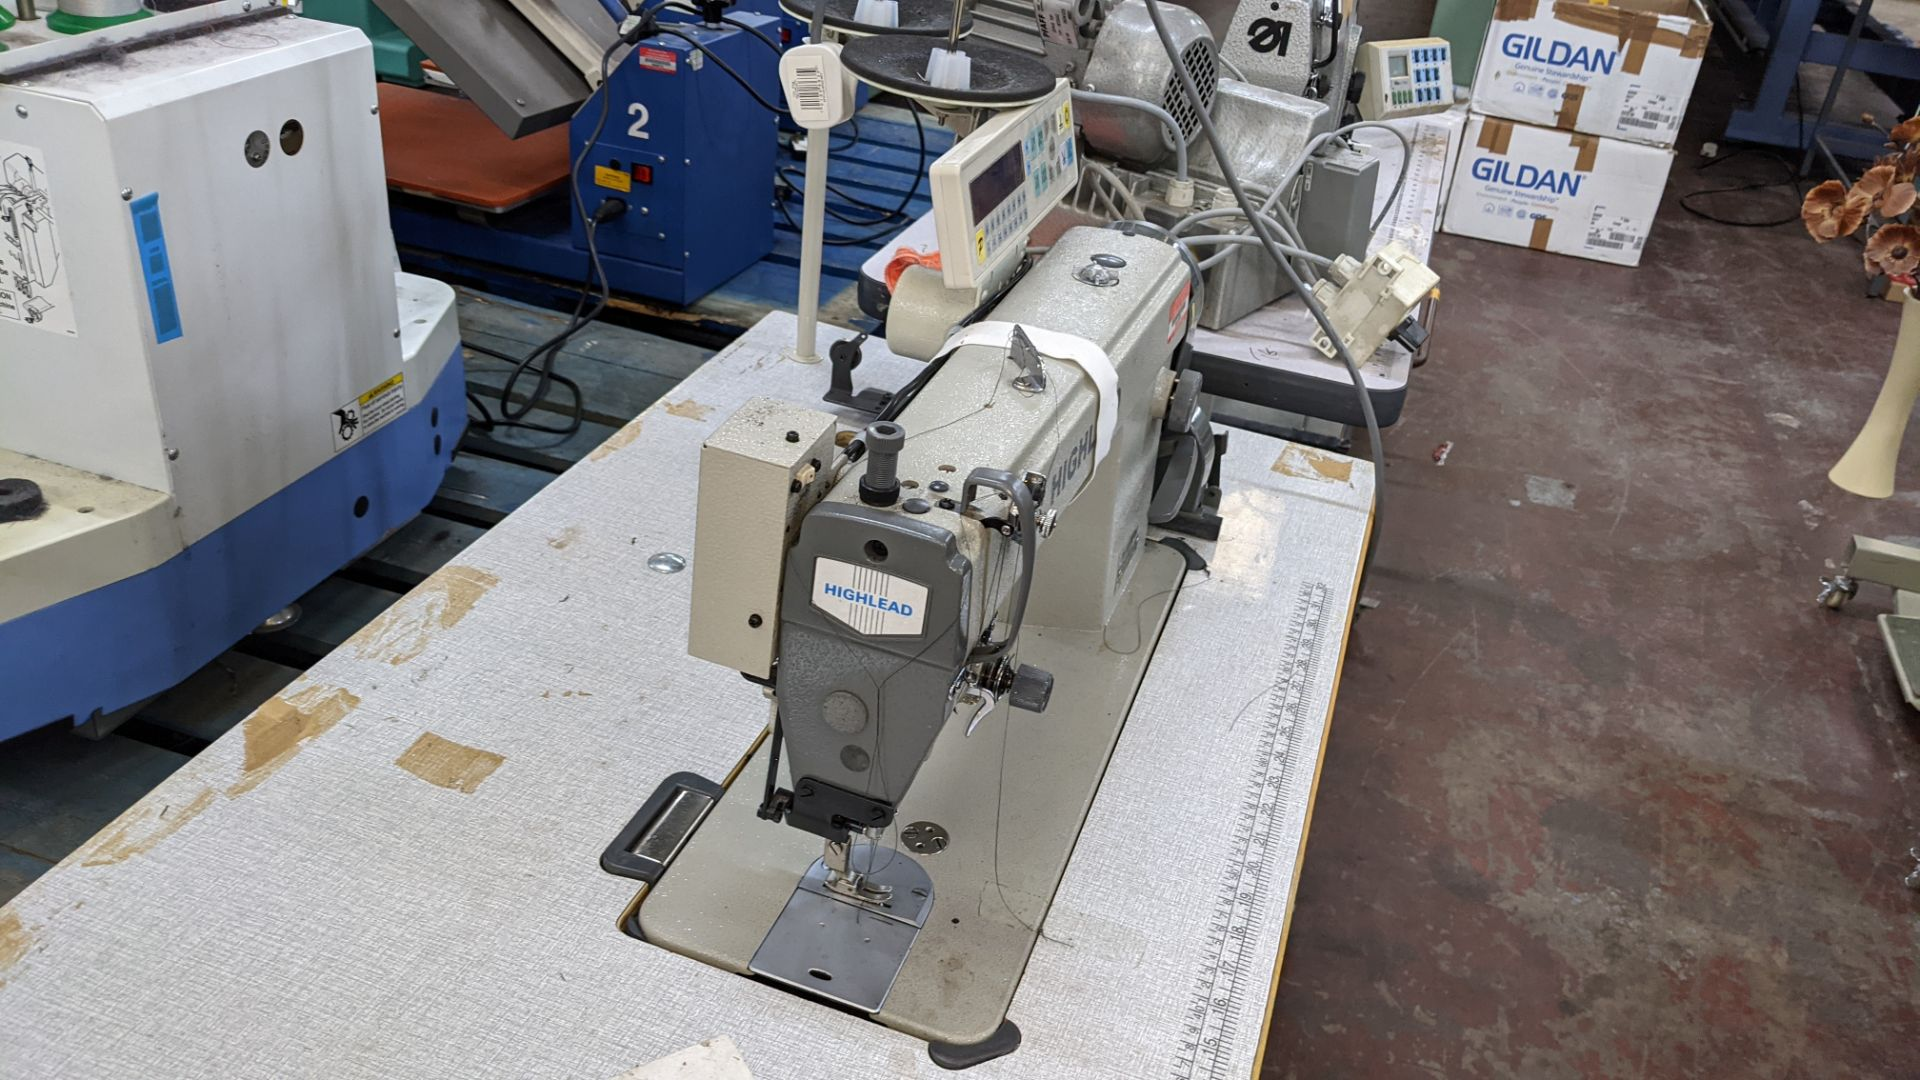 Highlead model GC128-M-D3 sewing machine - Image 10 of 18